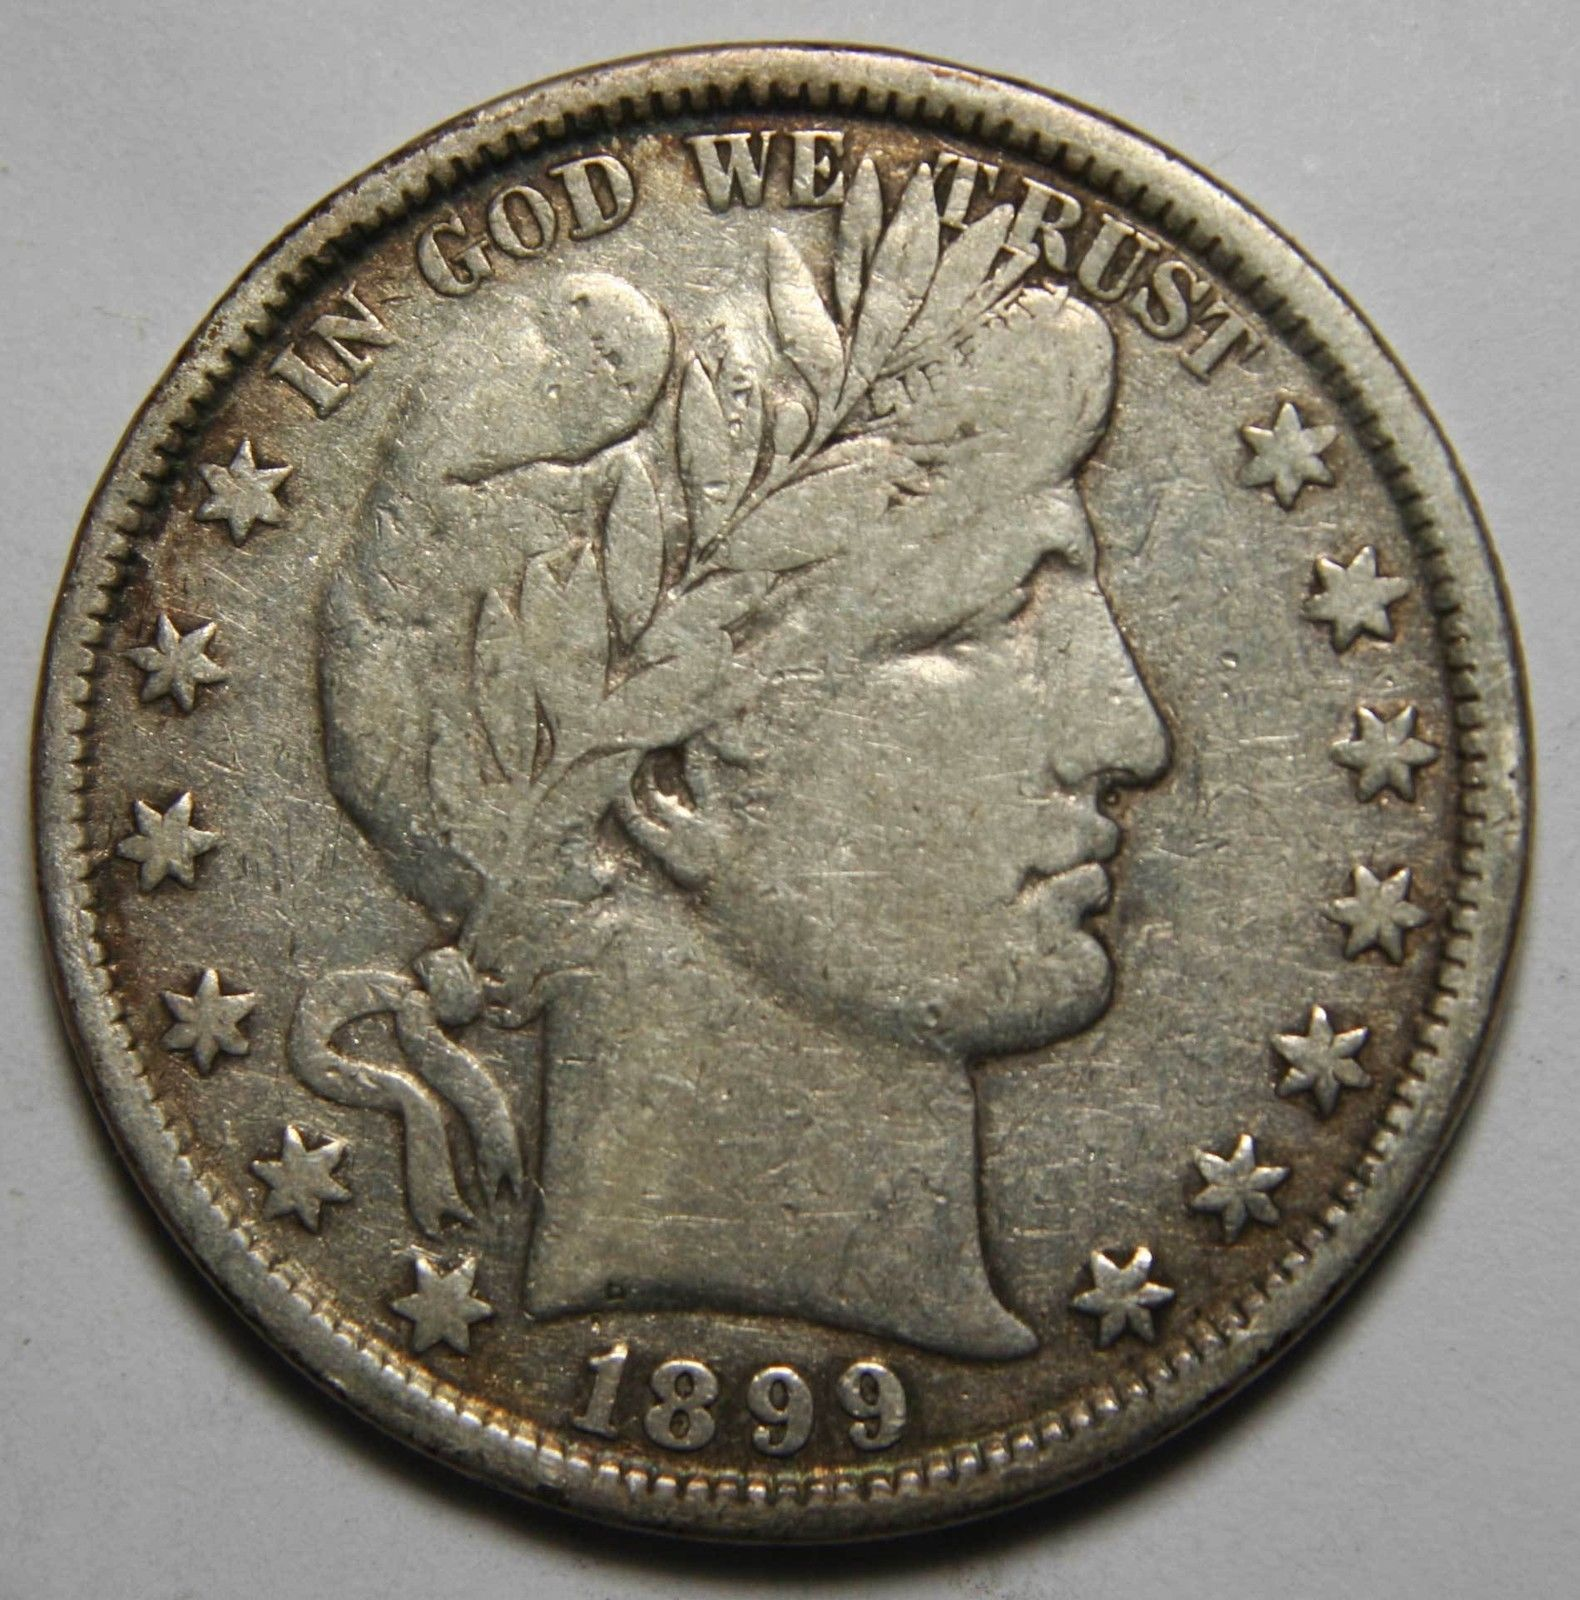 1899 Liberty Barber Head Half Dollar 50¢ Silver Coin Lot# MZ 4365